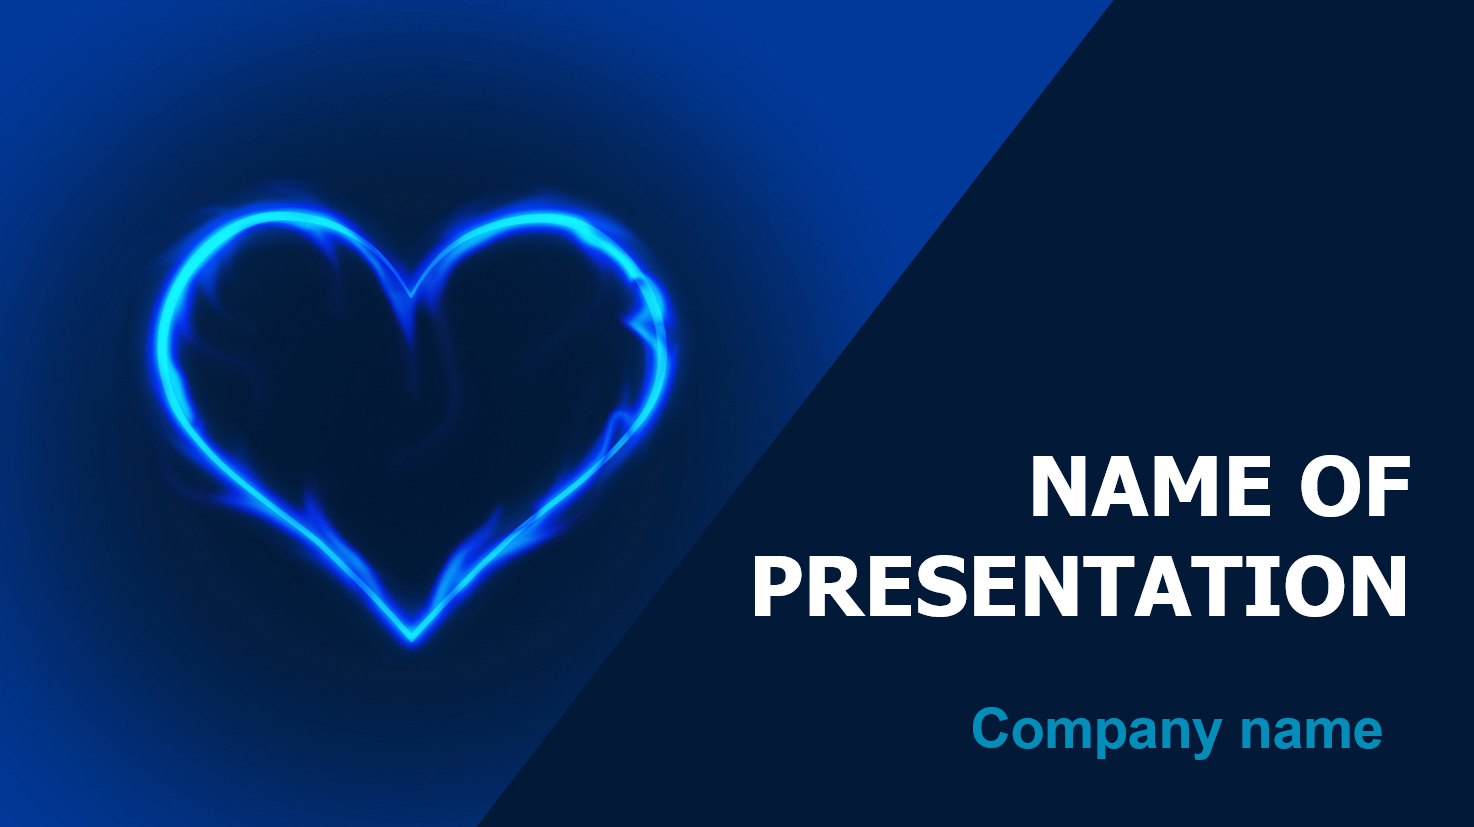 download free free cold heart powerpoint template and theme for, Modern powerpoint